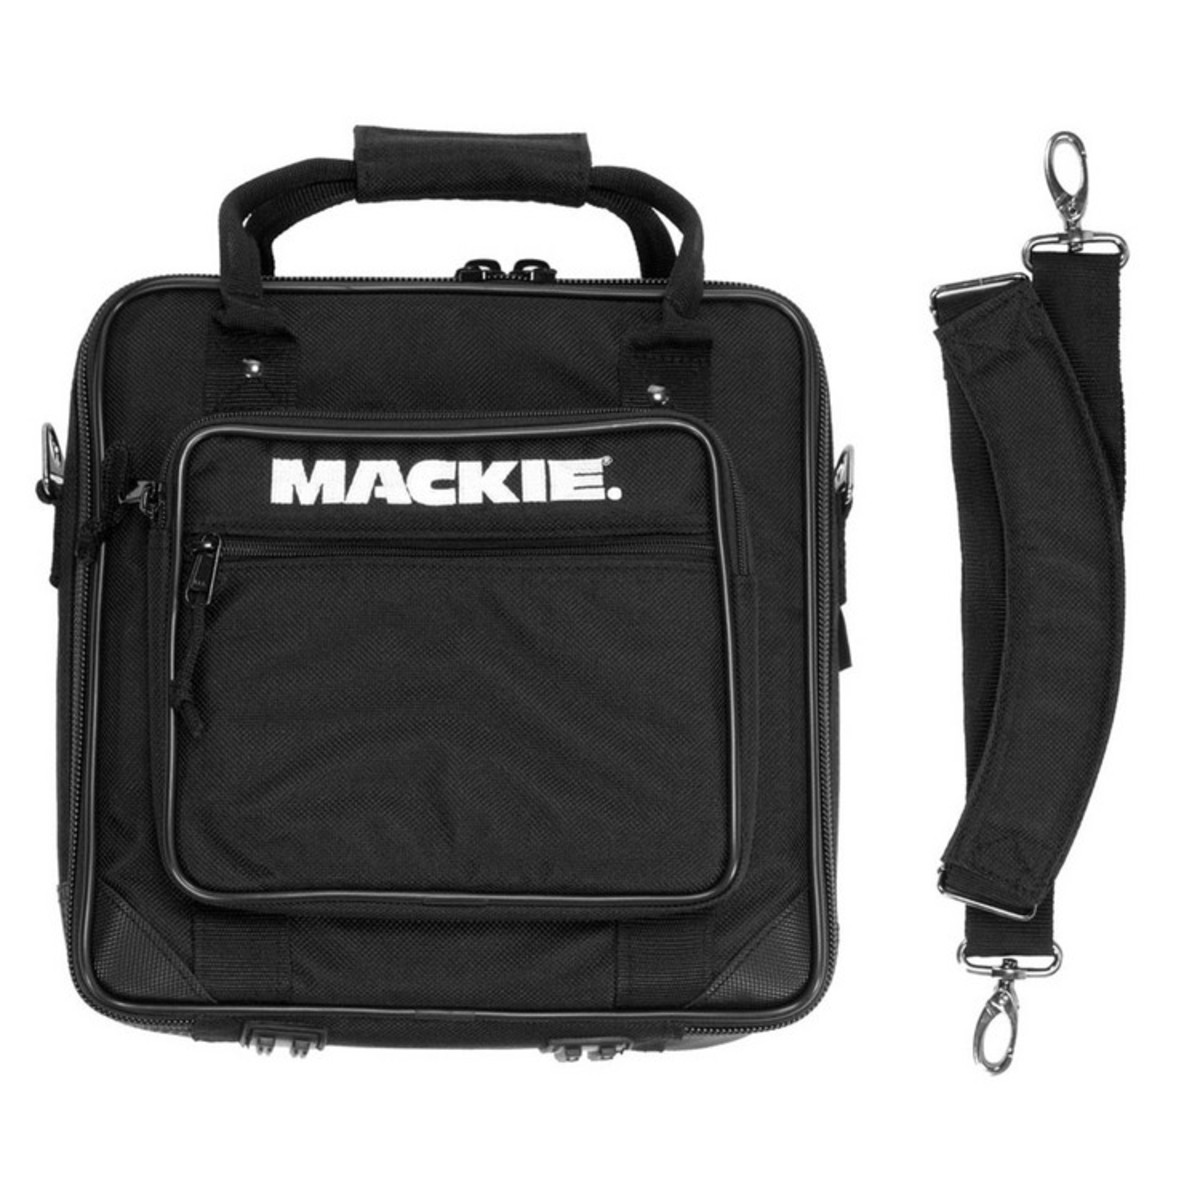 Mackie Profx12 And Dfx12 Padded Mixer Bag